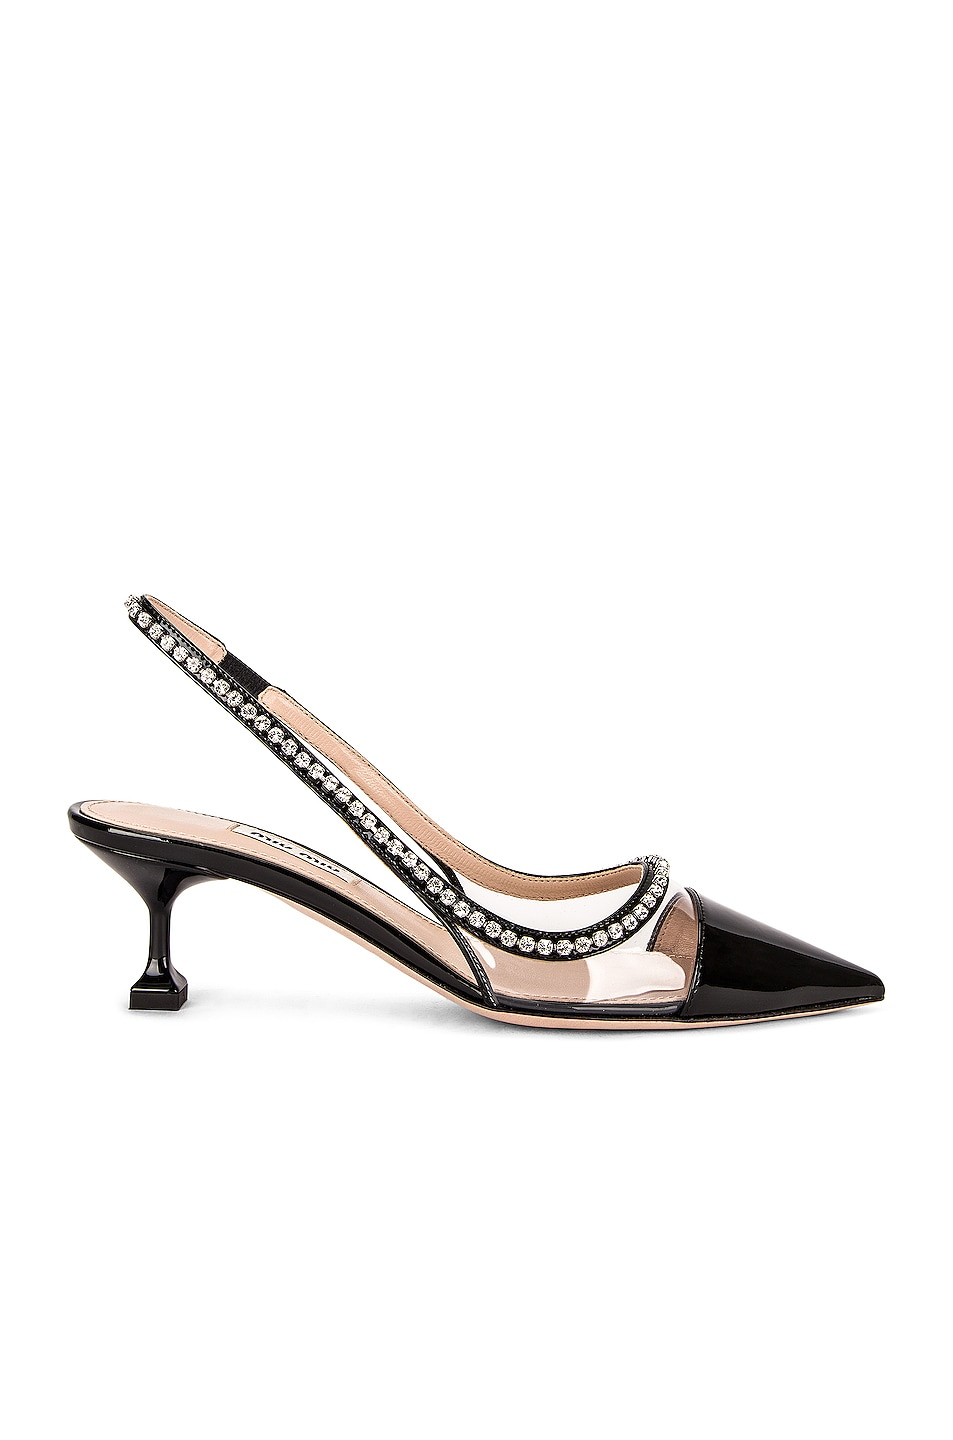 Image 1 of Miu Miu Patent Leather & Vinyl Slingback Pumps in Nero